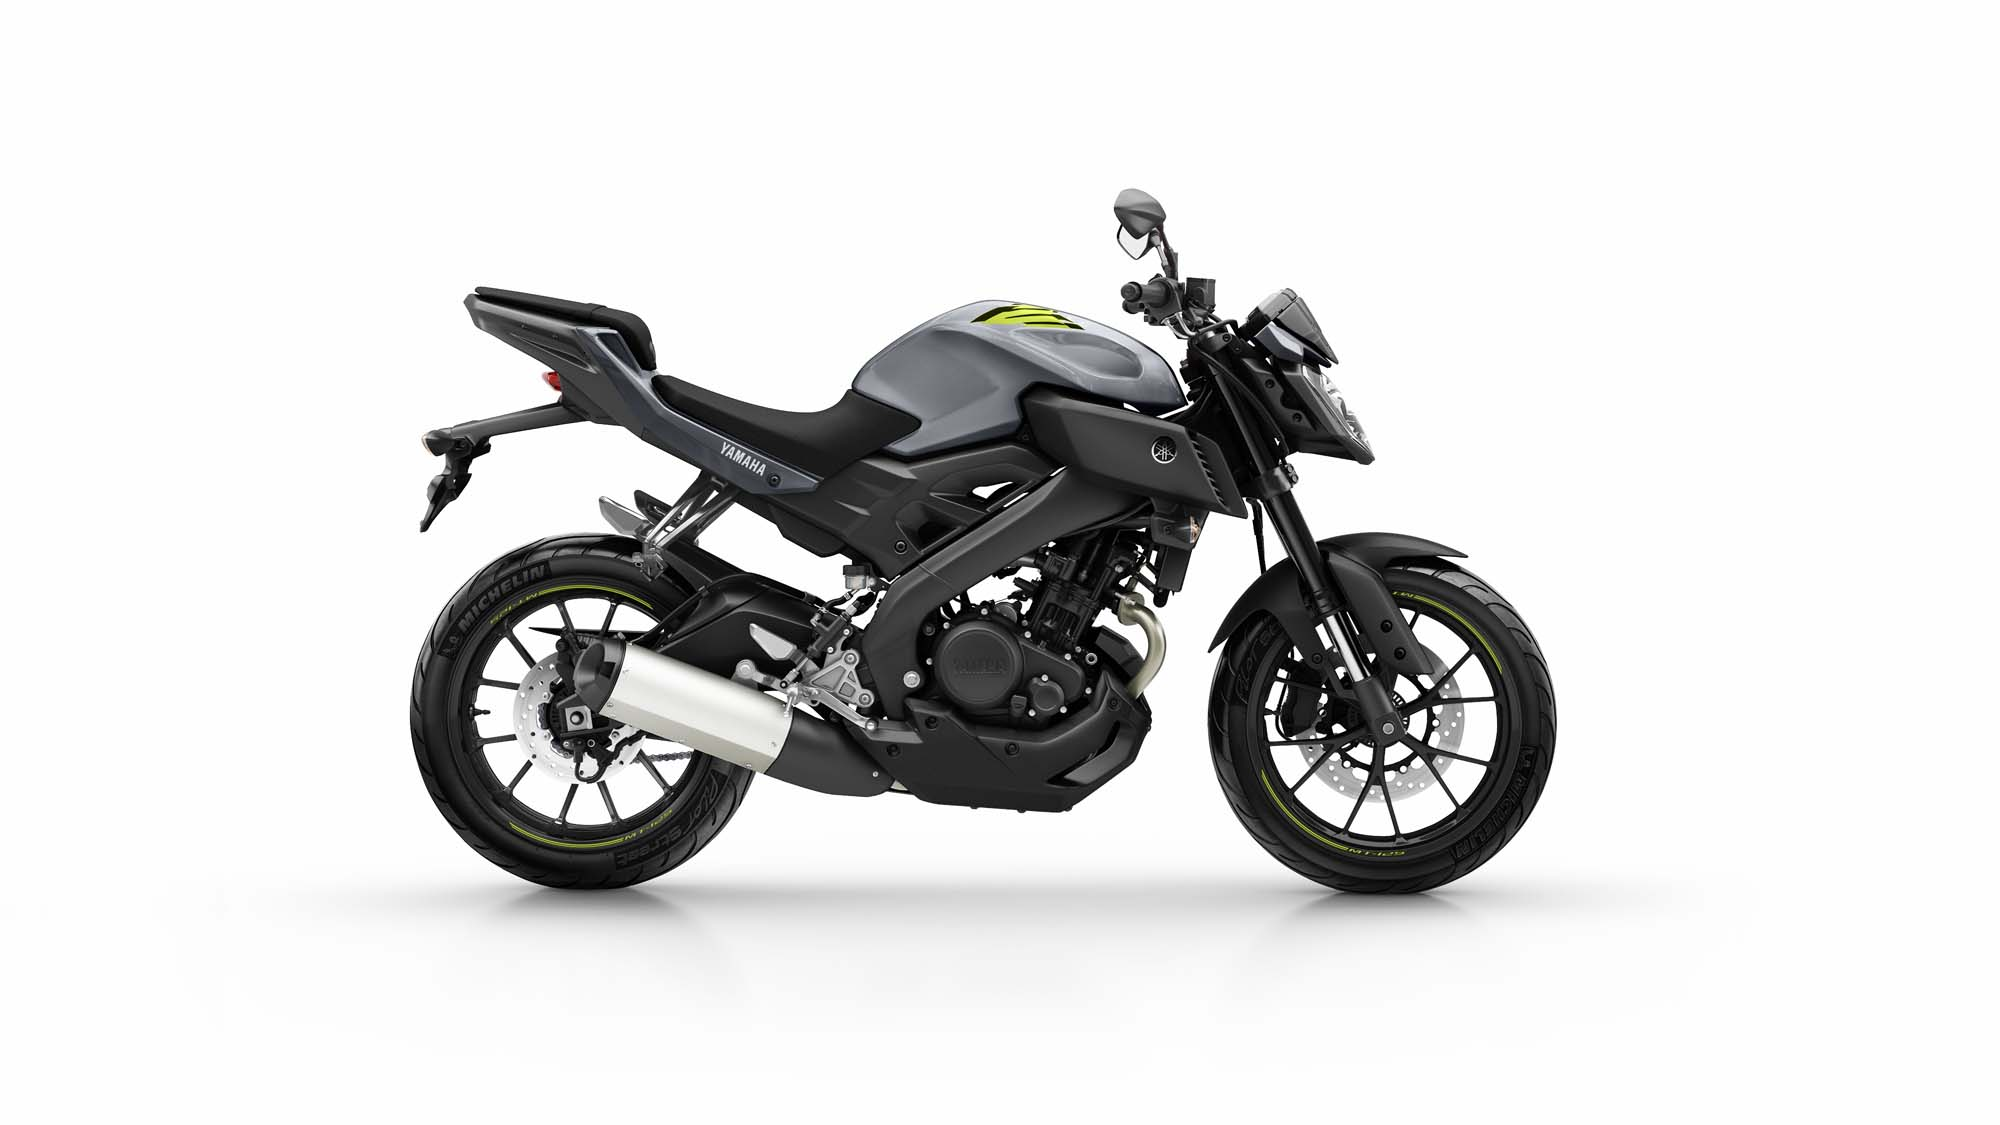 yamaha mt 125 bilder und technische daten. Black Bedroom Furniture Sets. Home Design Ideas